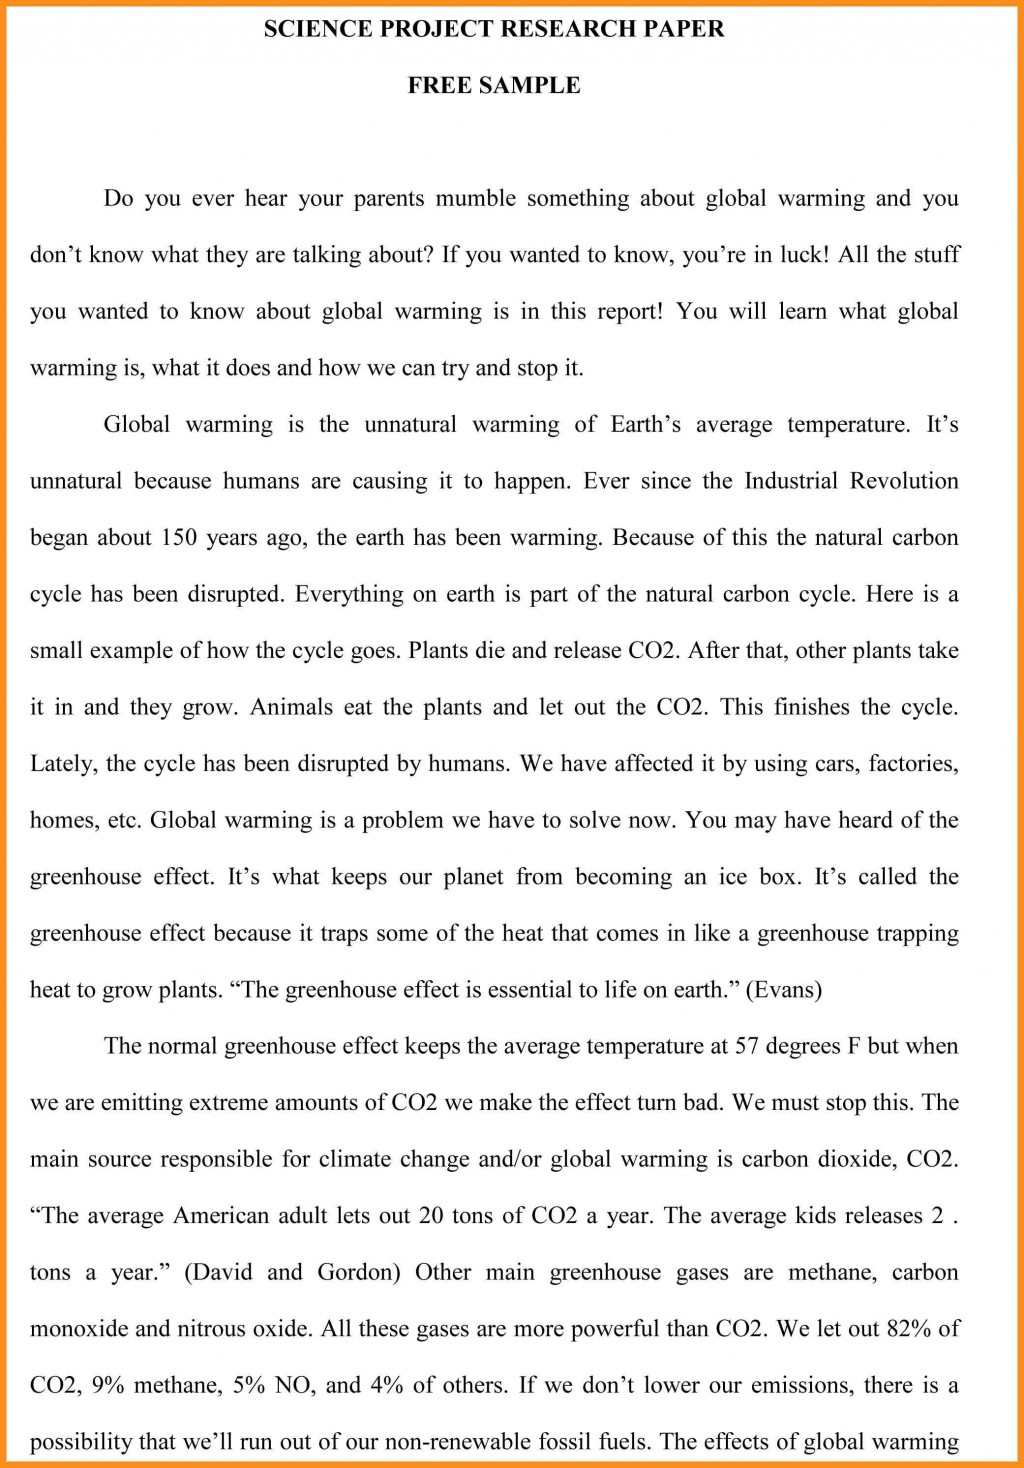 003 Good Essay Topics How To Write English An About Best Argumentative Inside Interesting Arg Funny For College Students Middle School High Fun Cool Top Prompts 7th Graders Pdf Large